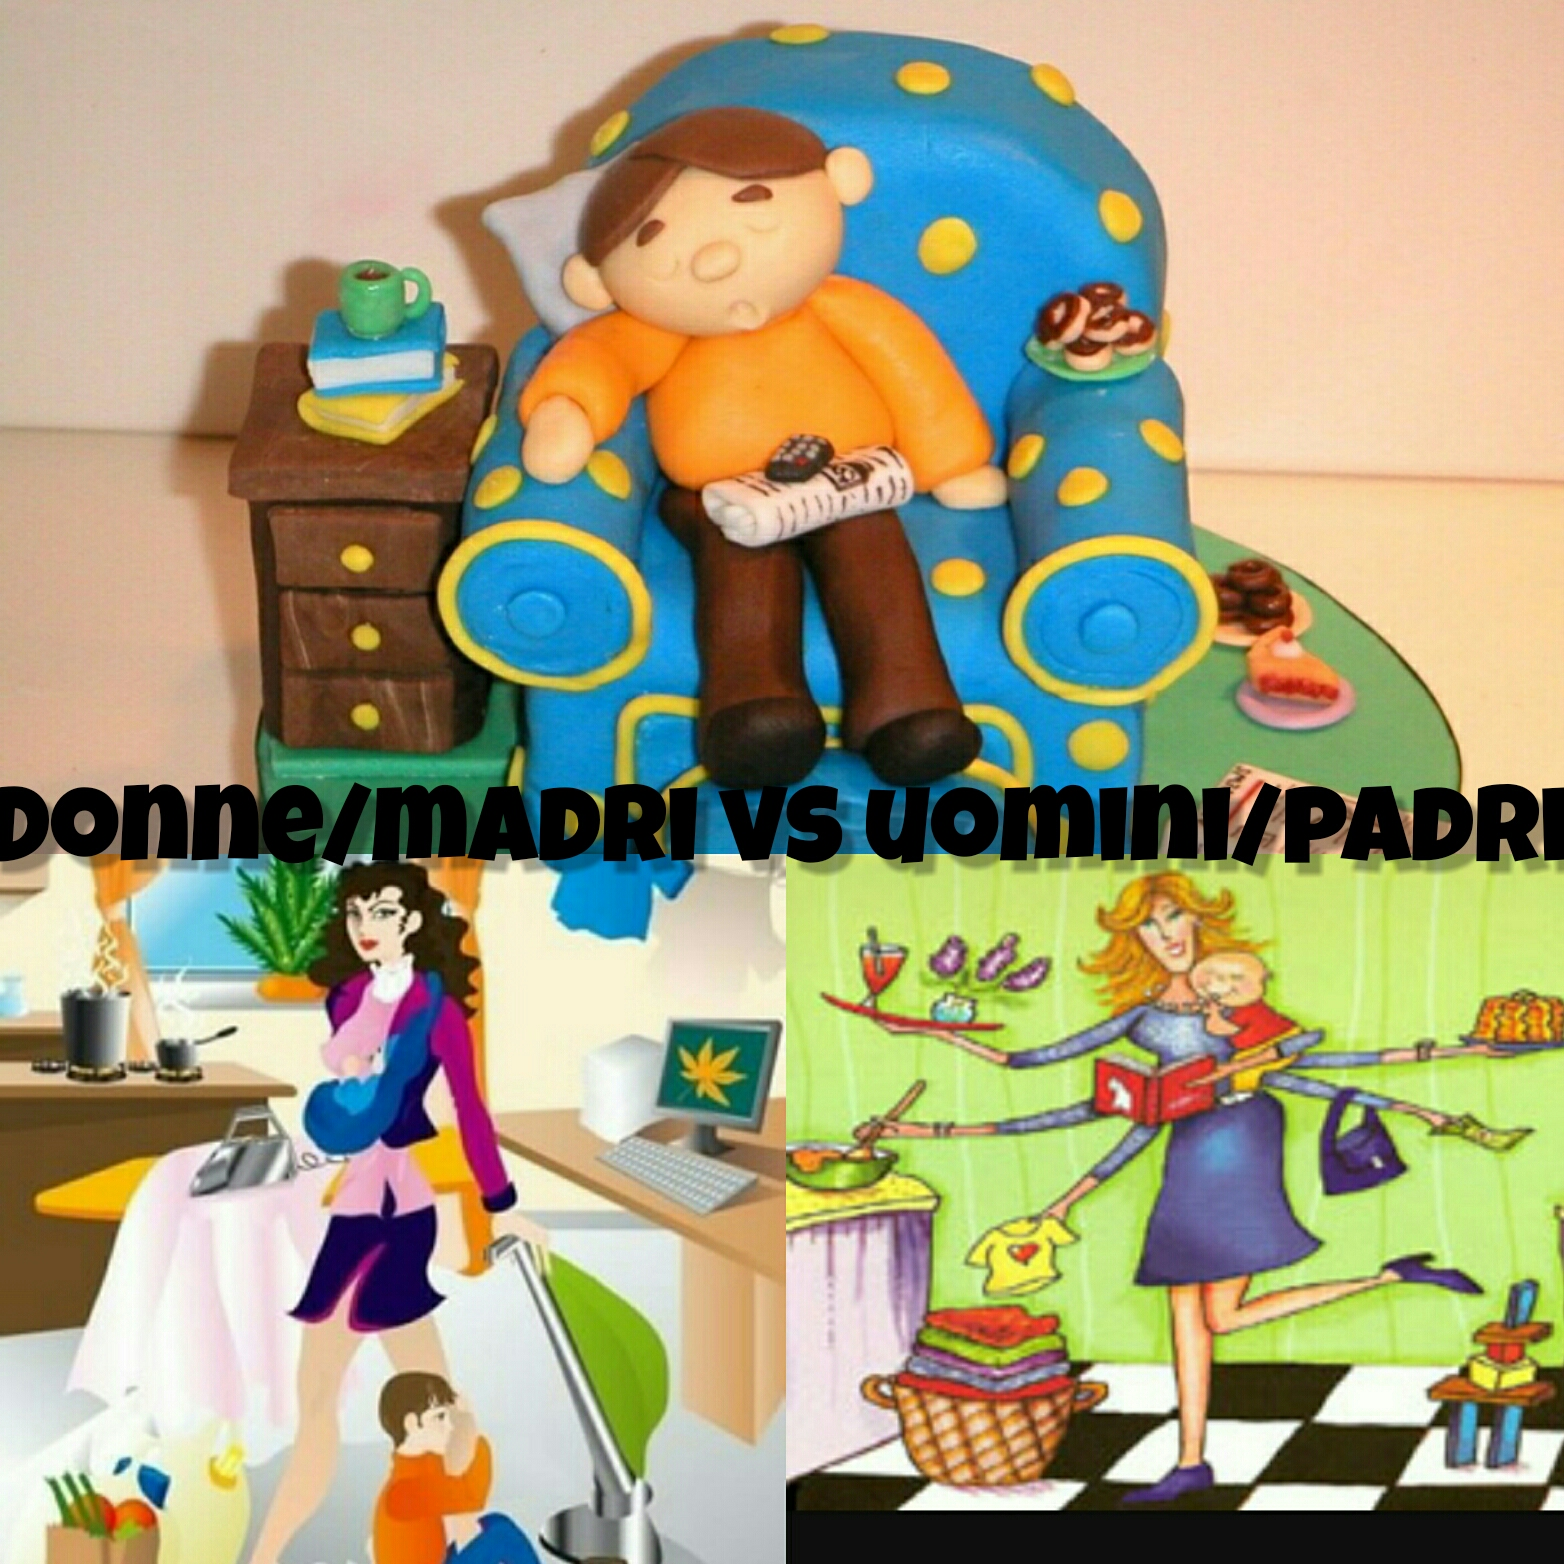 donne/madri vs uomini/padri